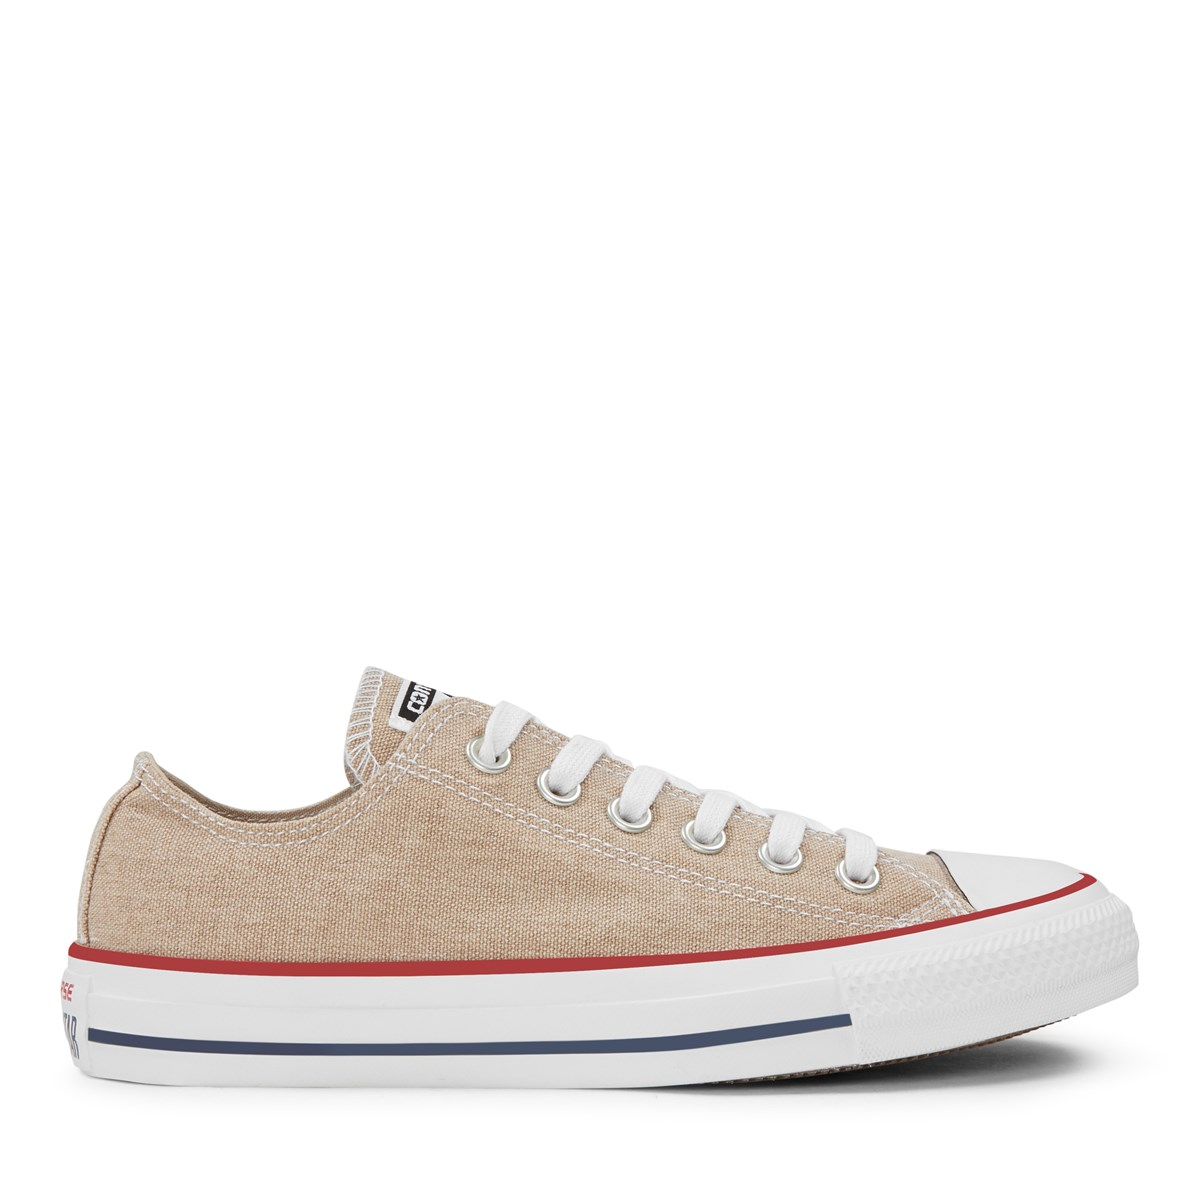 60ea4db89f6ae2 Chuck Taylor All Star Stone Washed sneaker